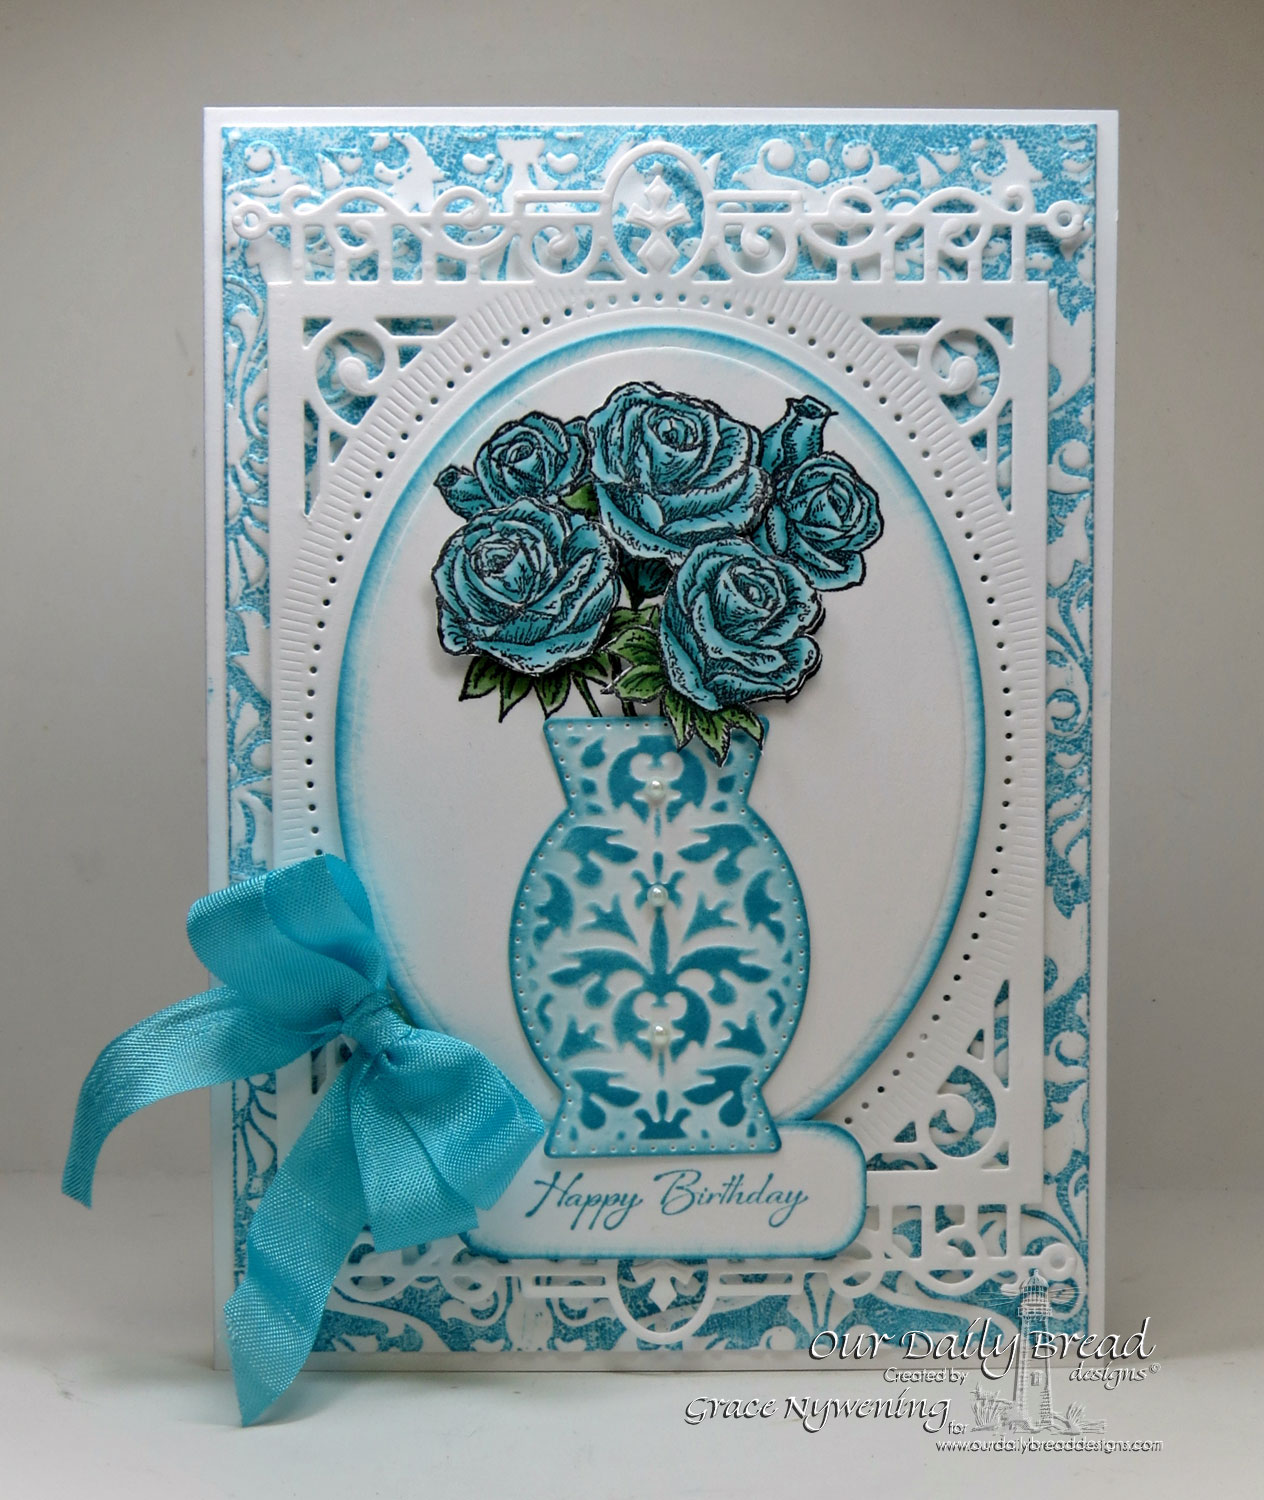 Stamps - Our Daily Bread Designs Rose Bouquet, Iris, ODBD Custom Decorative Vase Die